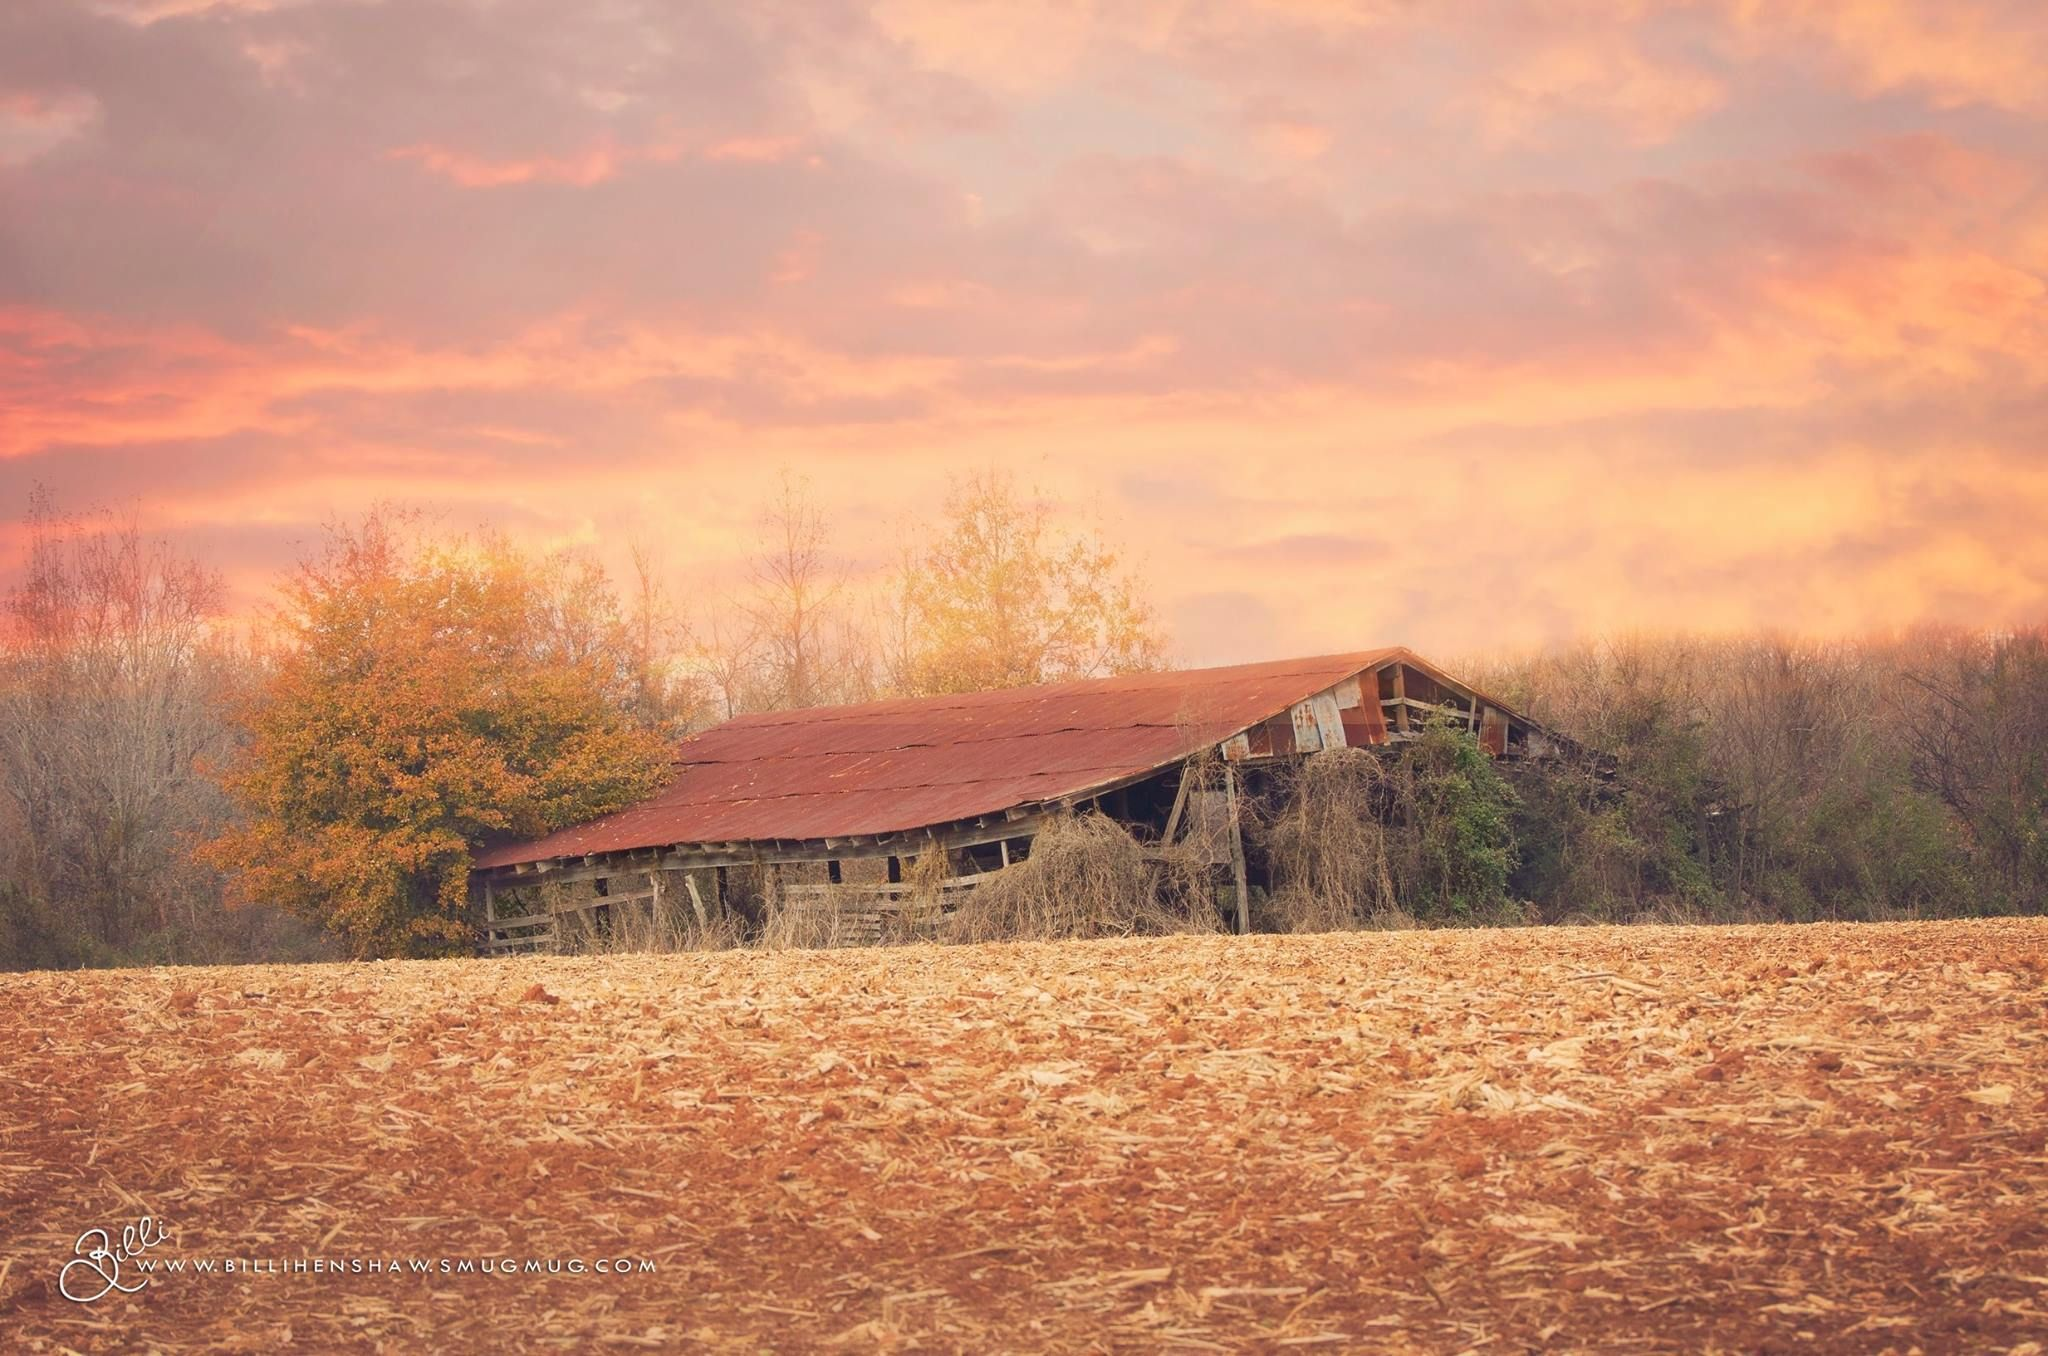 My Alabama Barn photo! One, out of many, of my favorite